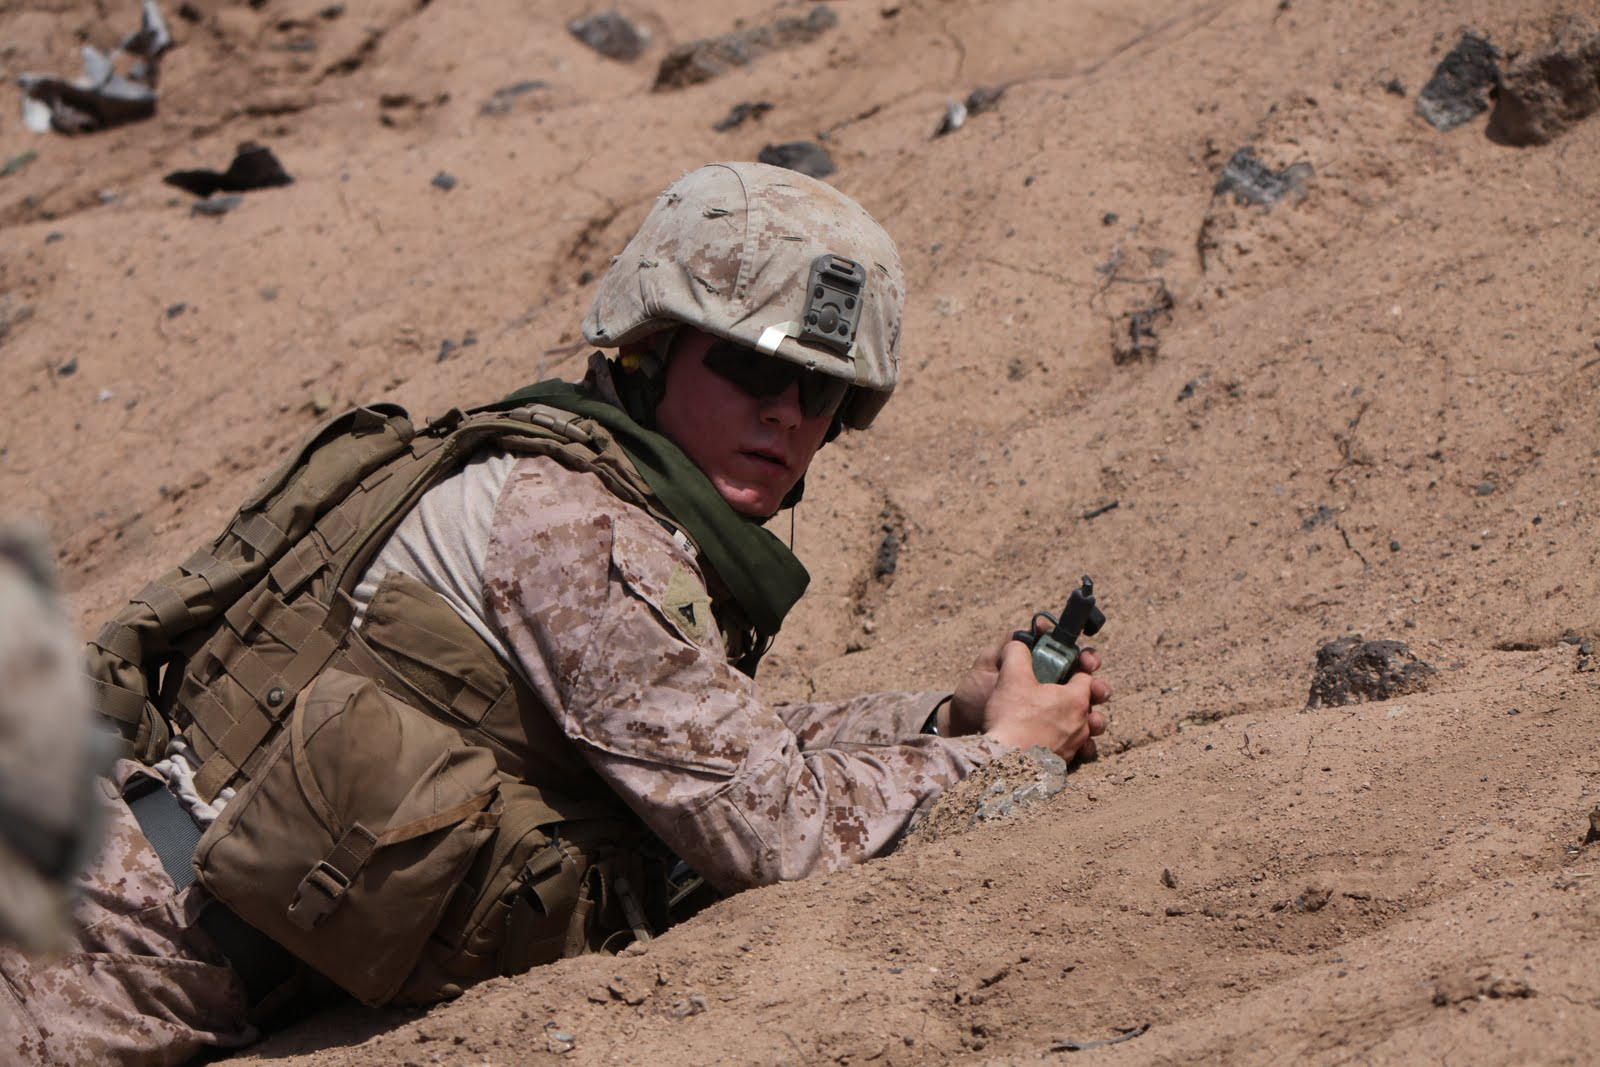 Reagan Selman in Djibouti in 2011. (U.S. Marine Corps photo by SSgt Donald Bohanner)